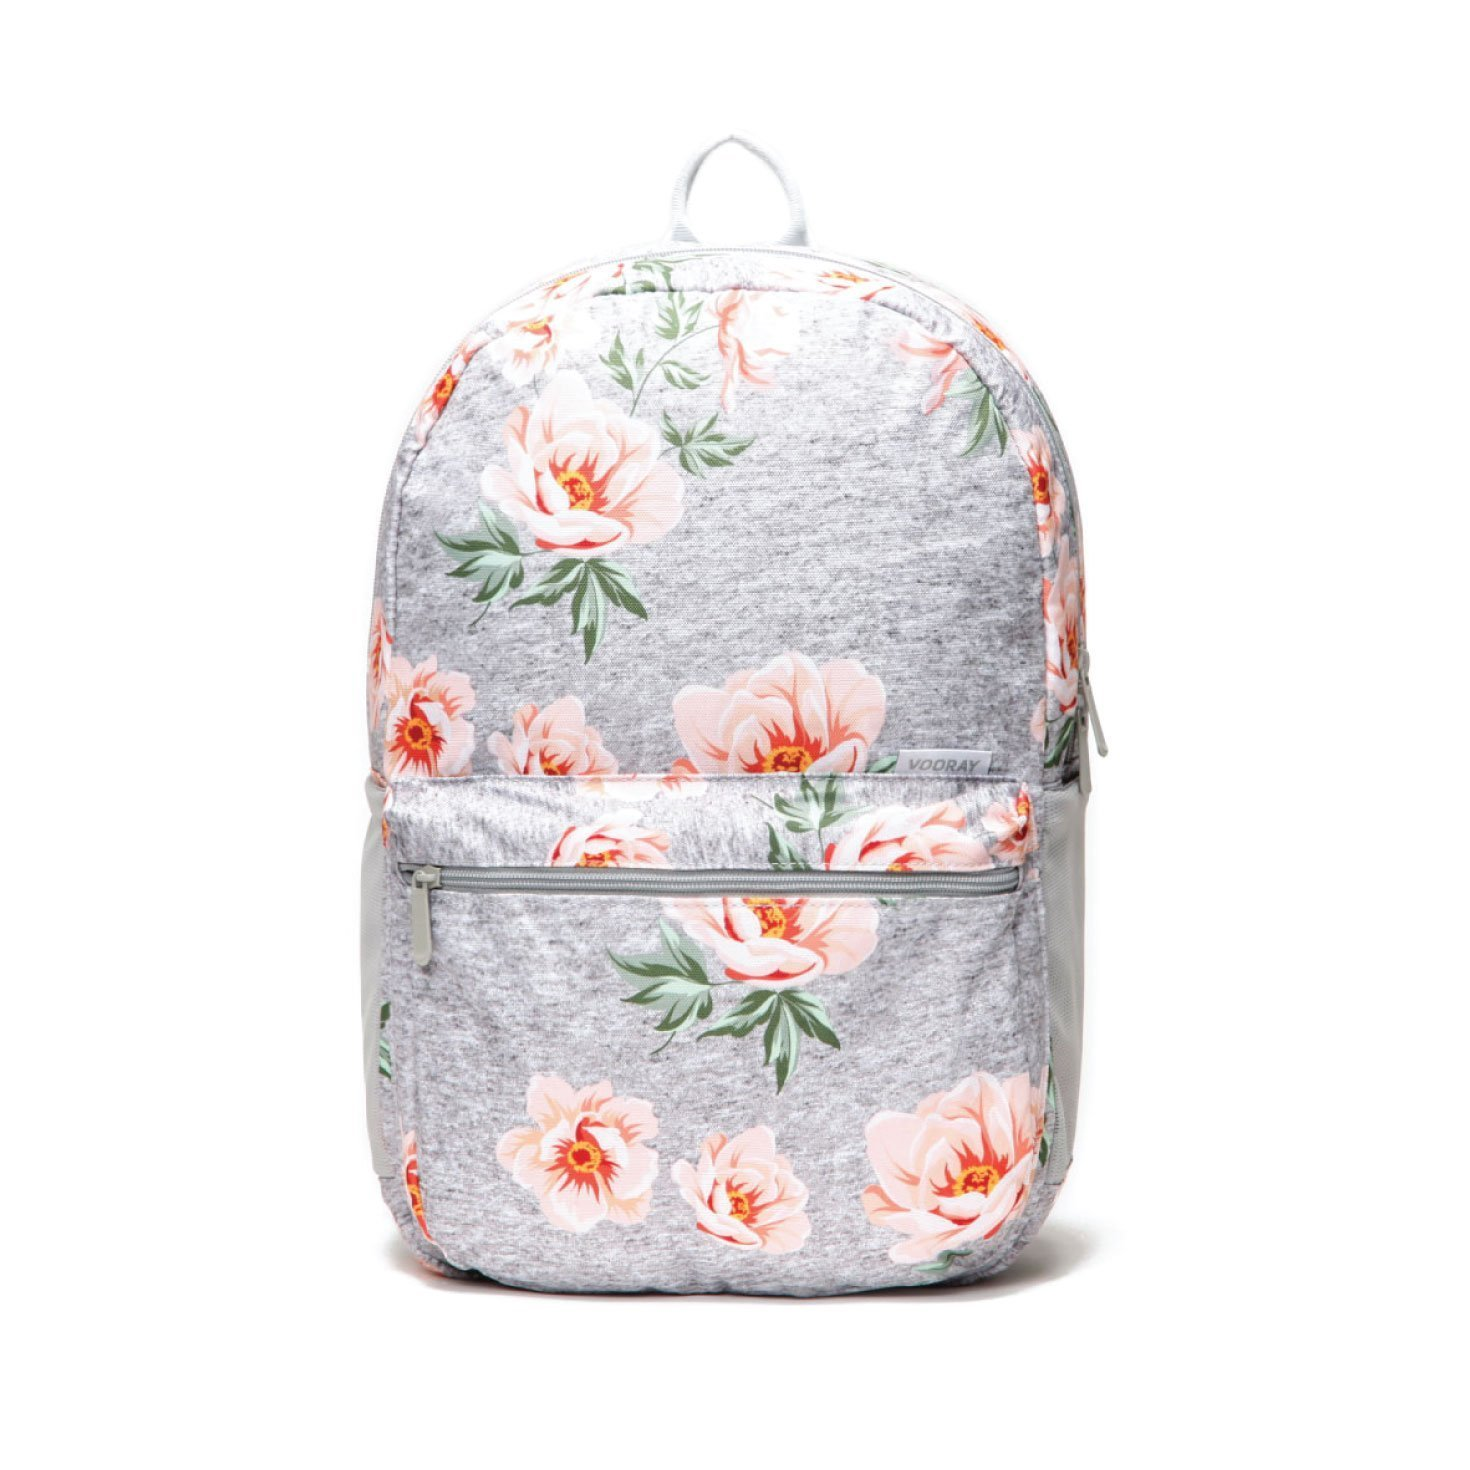 Vooray: ACE Backpack - Rose Gray image